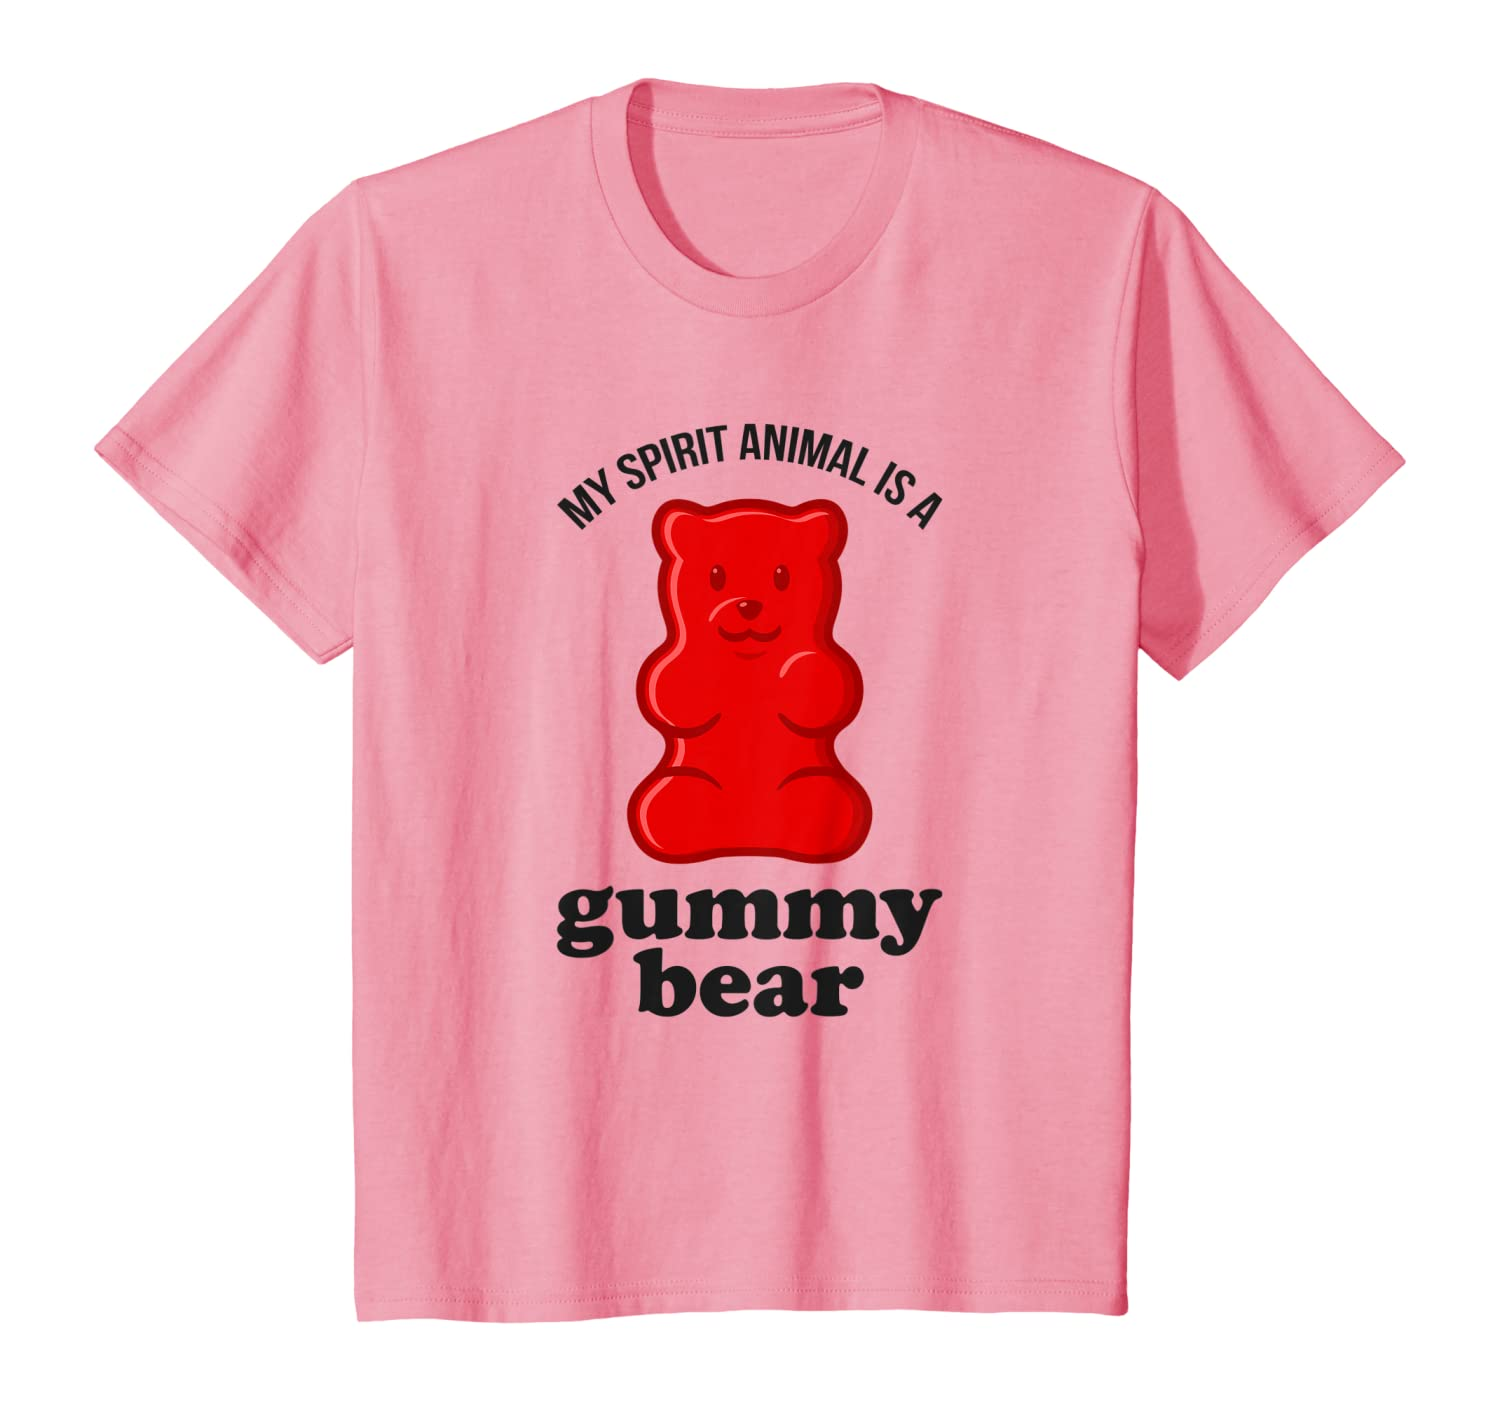 My Spirit Animal Is A Gummy Bear Funny T-Shirt Youth